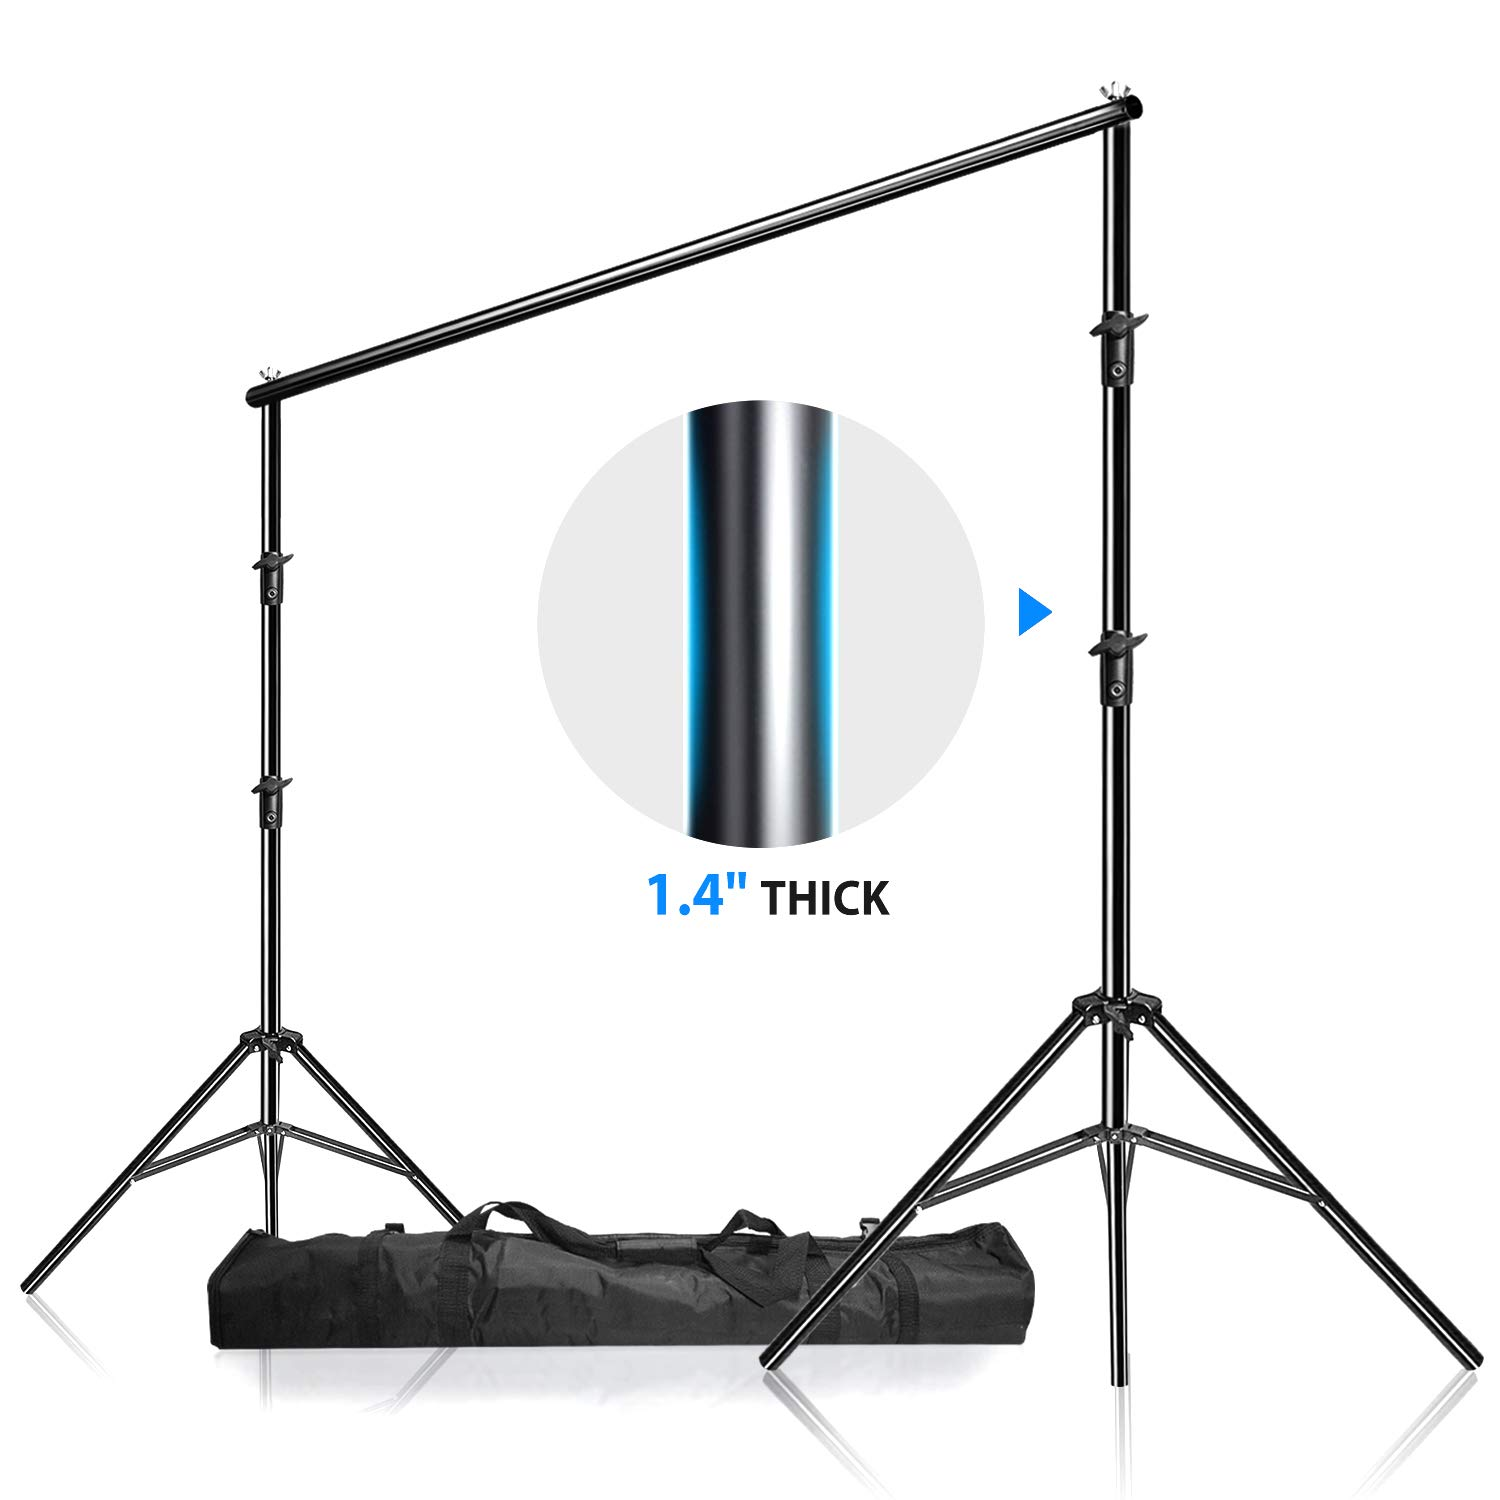 LimoStudio, 12ft (W) x 10ft (H) Backdrop Muslin Support Structure System Strong and Stable 1.4'' Thick Stand Pole, Premium Quality Carry Bag, Photo Video Studio, AGG1782 by LS LIMO STUDIO LIMOSTUDIO